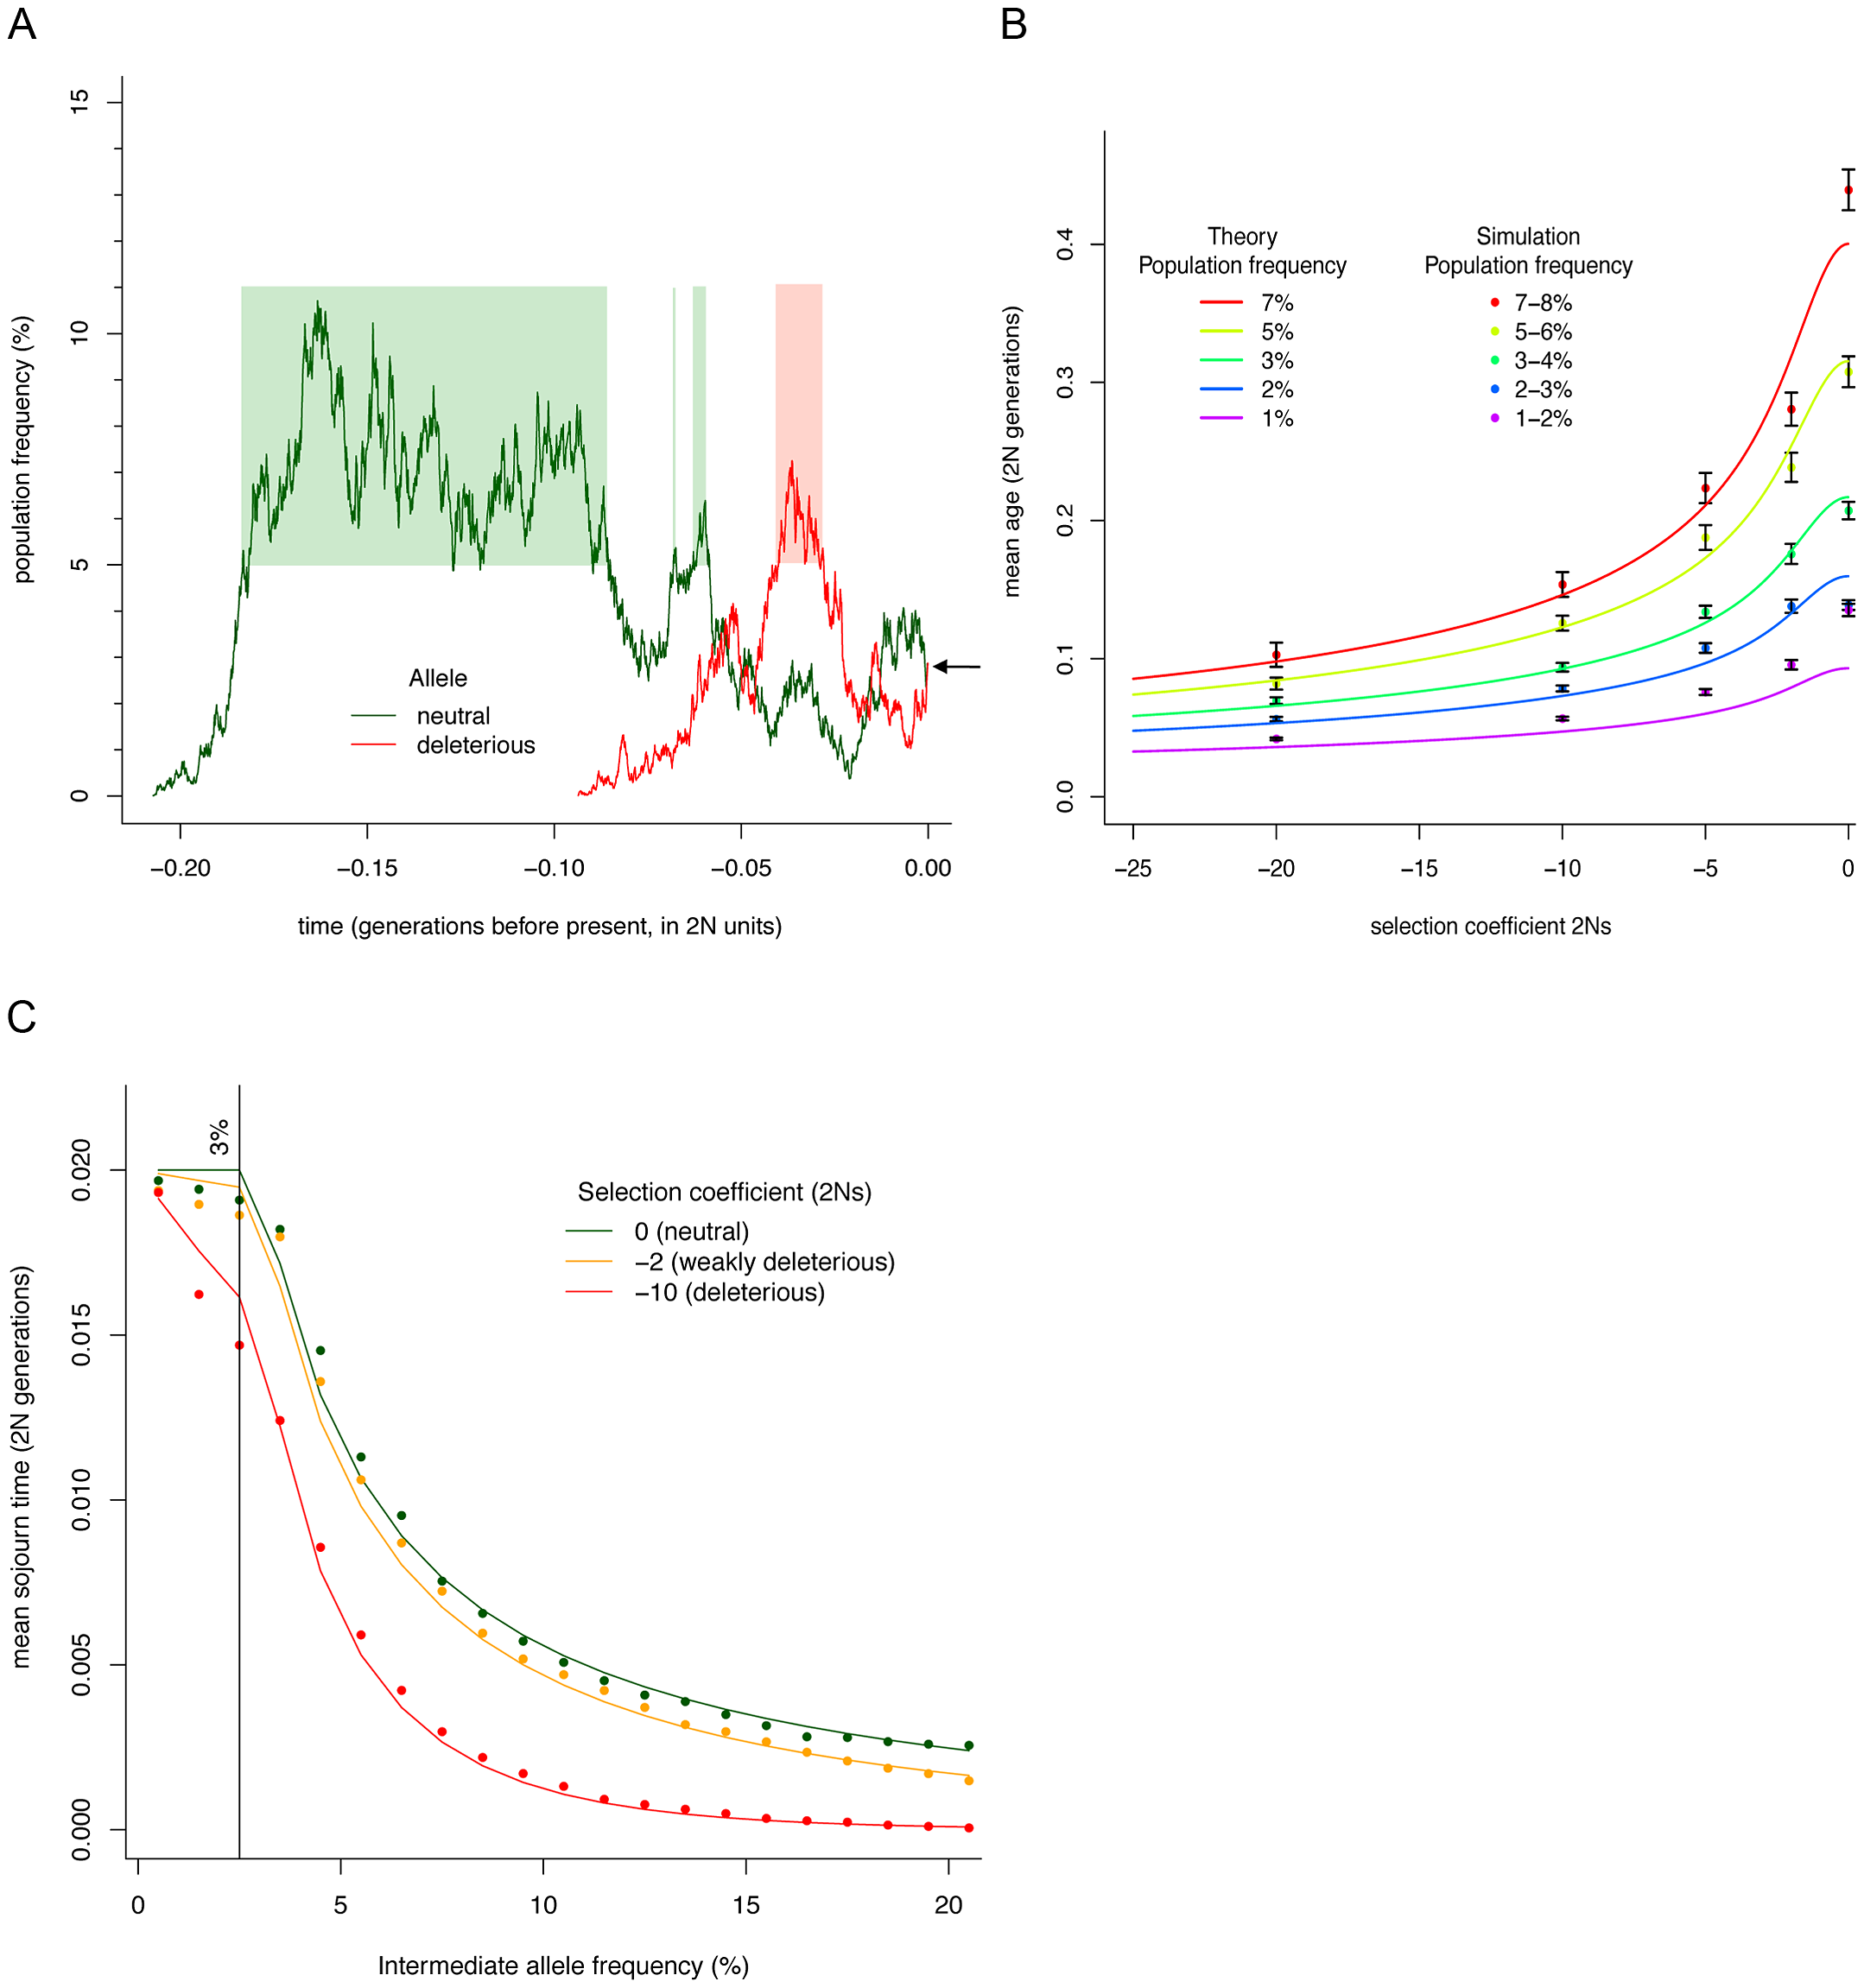 Simulation and theoretical results for allelic age and sojourn times.